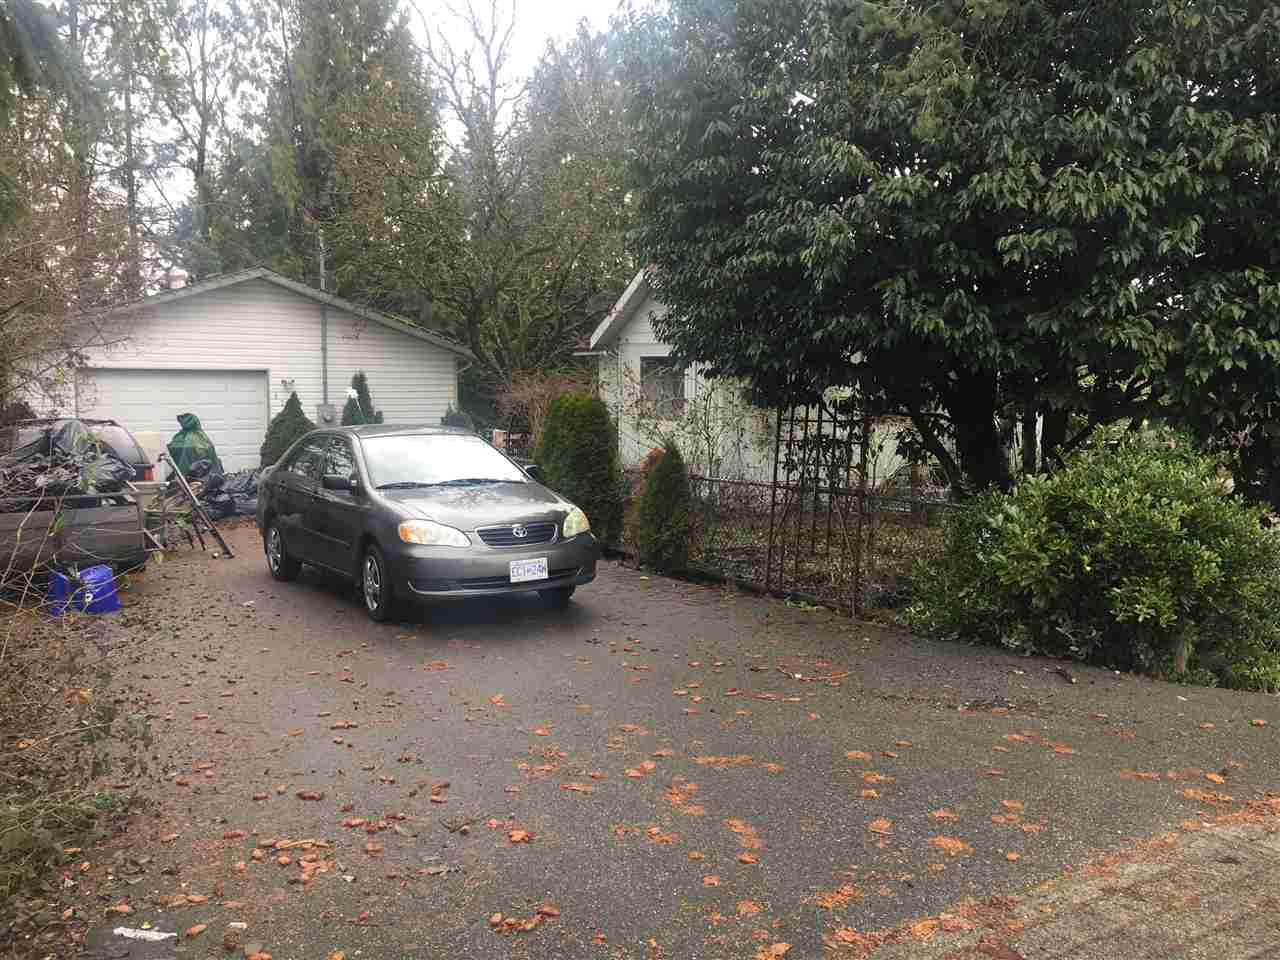 Super liveable 3 bedroom character home and detached garage on a large corner lot. Walking distance to schools shopping and transit. Possibility of future development in this area. Currently rented month to month. Tenant willing to stay and rent back if desired by new owner.